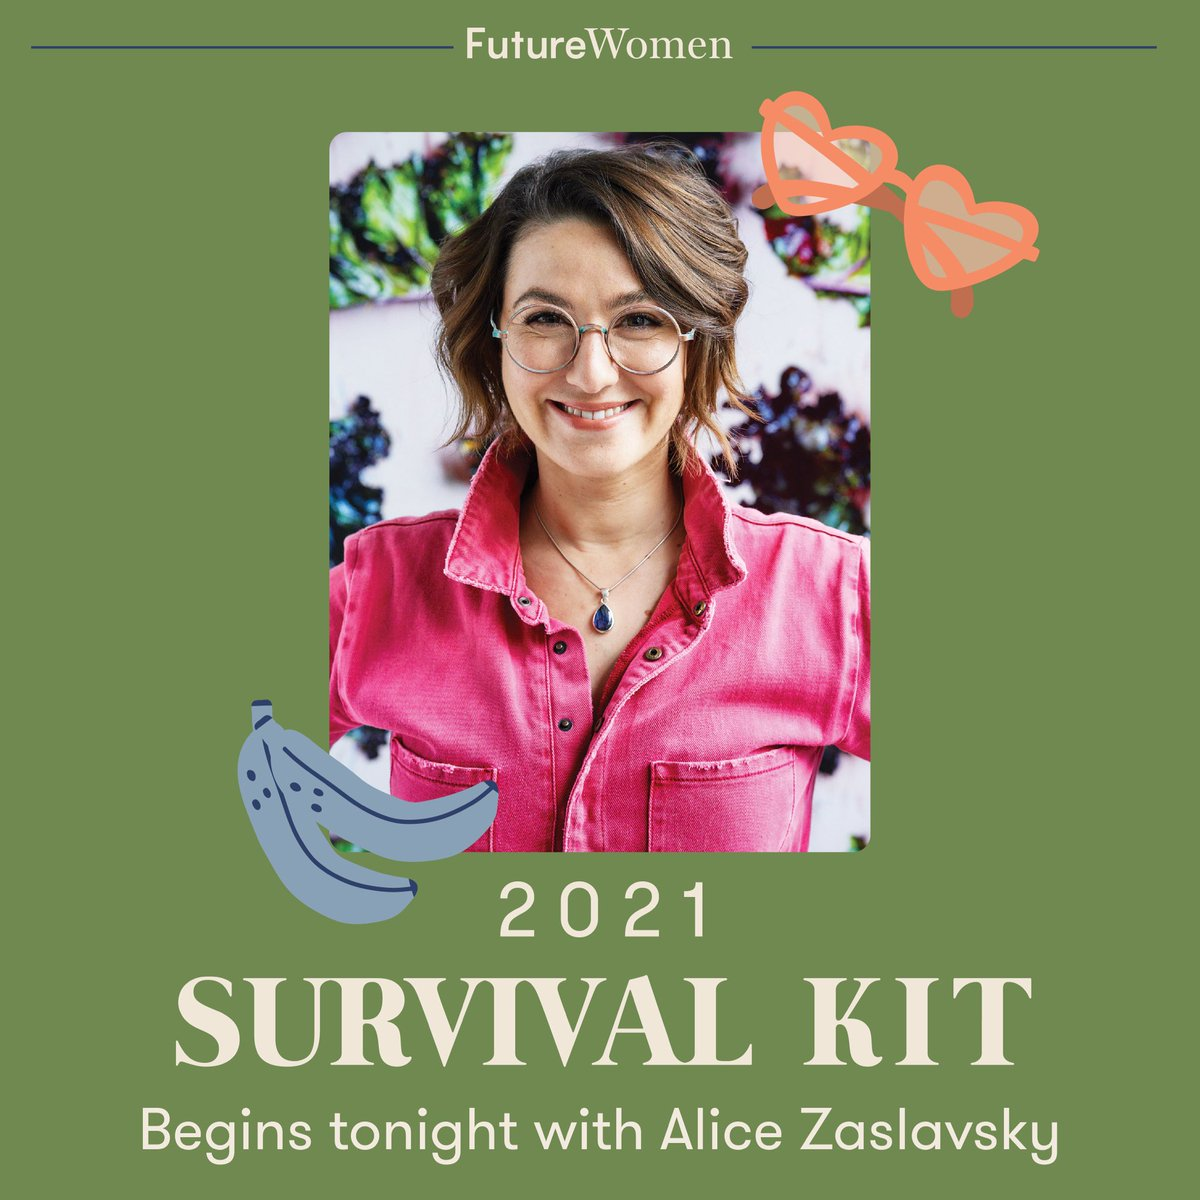 I'm cooking my BBB from #inpraiseofveg with @JamilaRizvi for the @FutureWomen Survival Kit tonight. Come with! 🎉